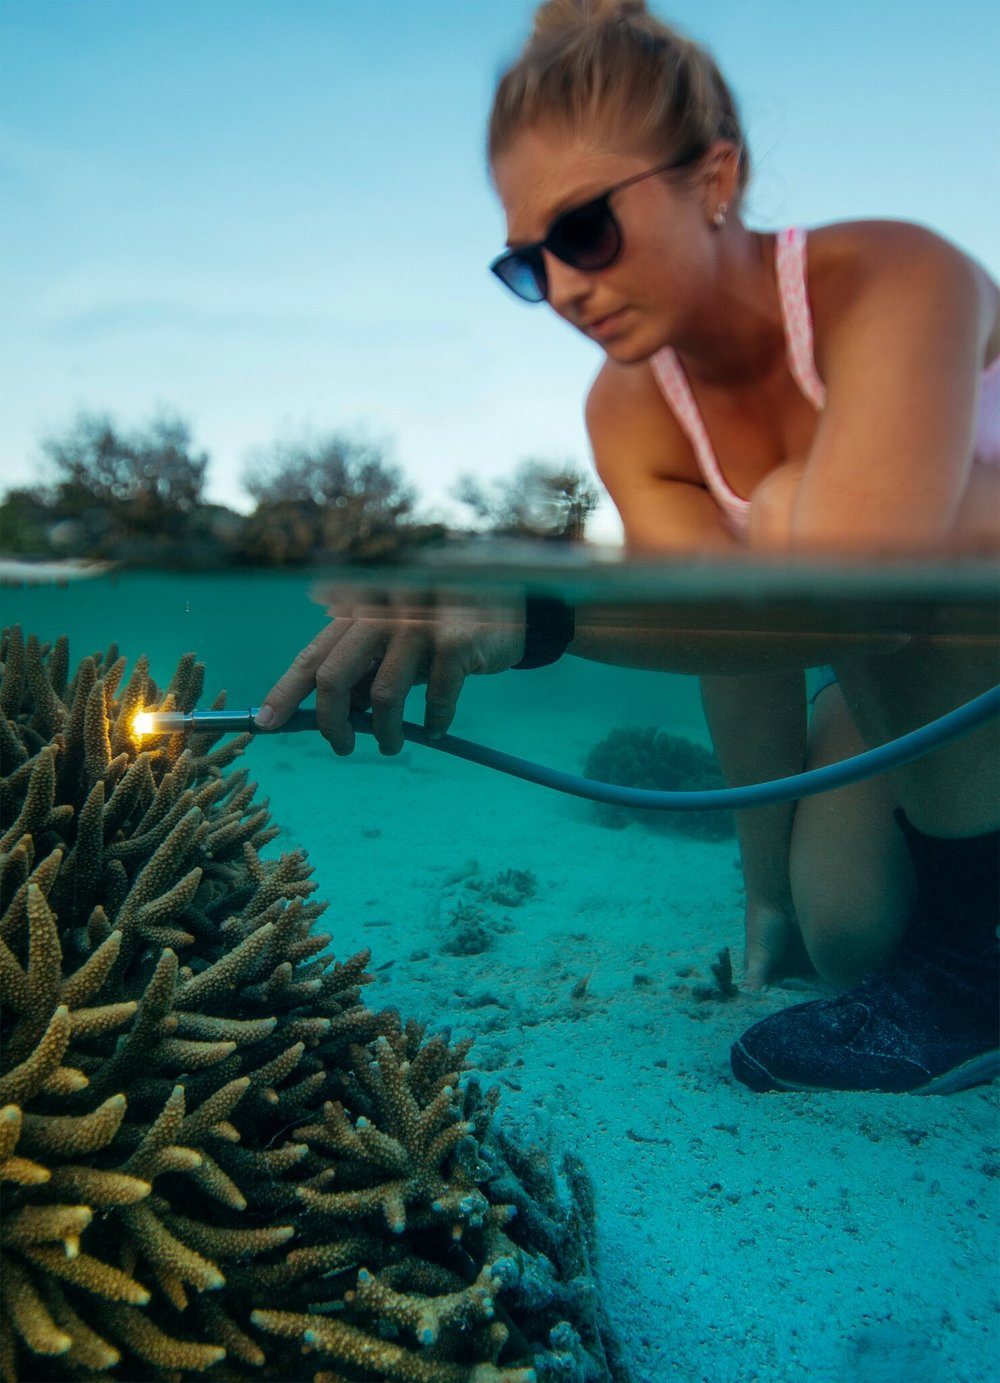 A technique used to estimate the health of a coral where a pulse of light is used to provide a fast assessment of the overall photosynthetic state.